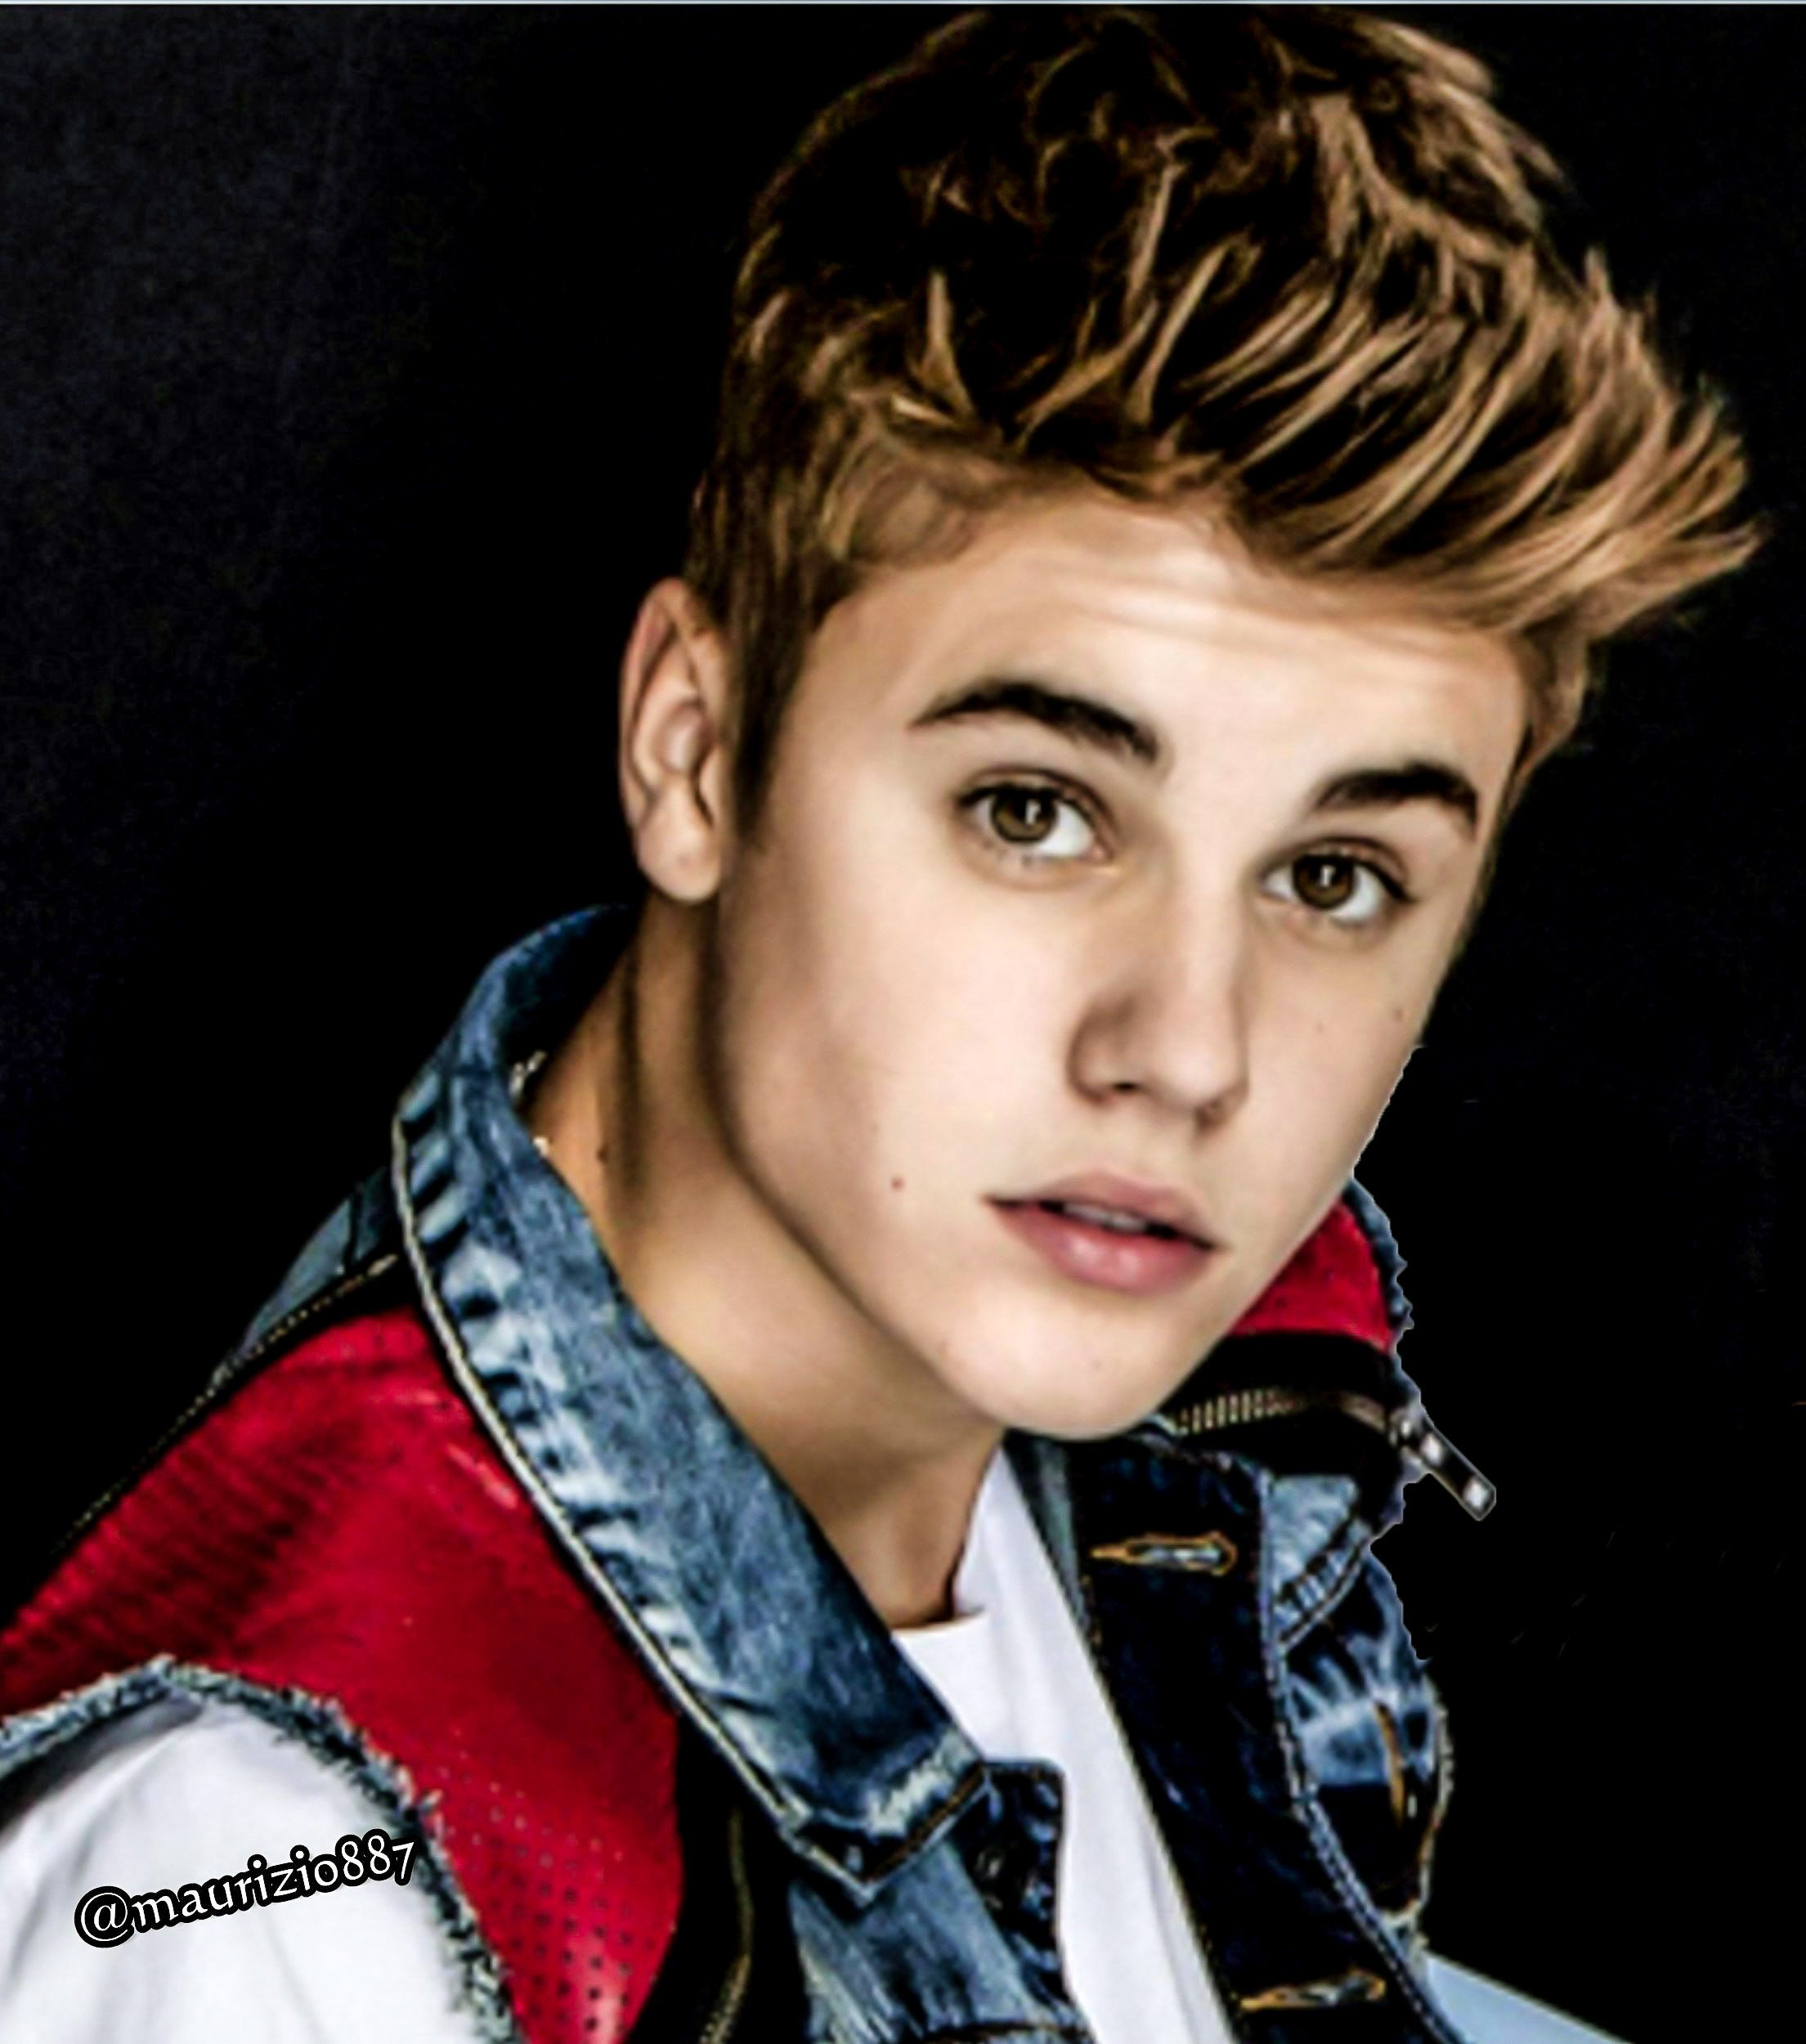 Justin Bieber Wallpapers Hd 2015 Justin Bieber 2015 Photoshoot Justin Bieber Images Womens Hairstyles